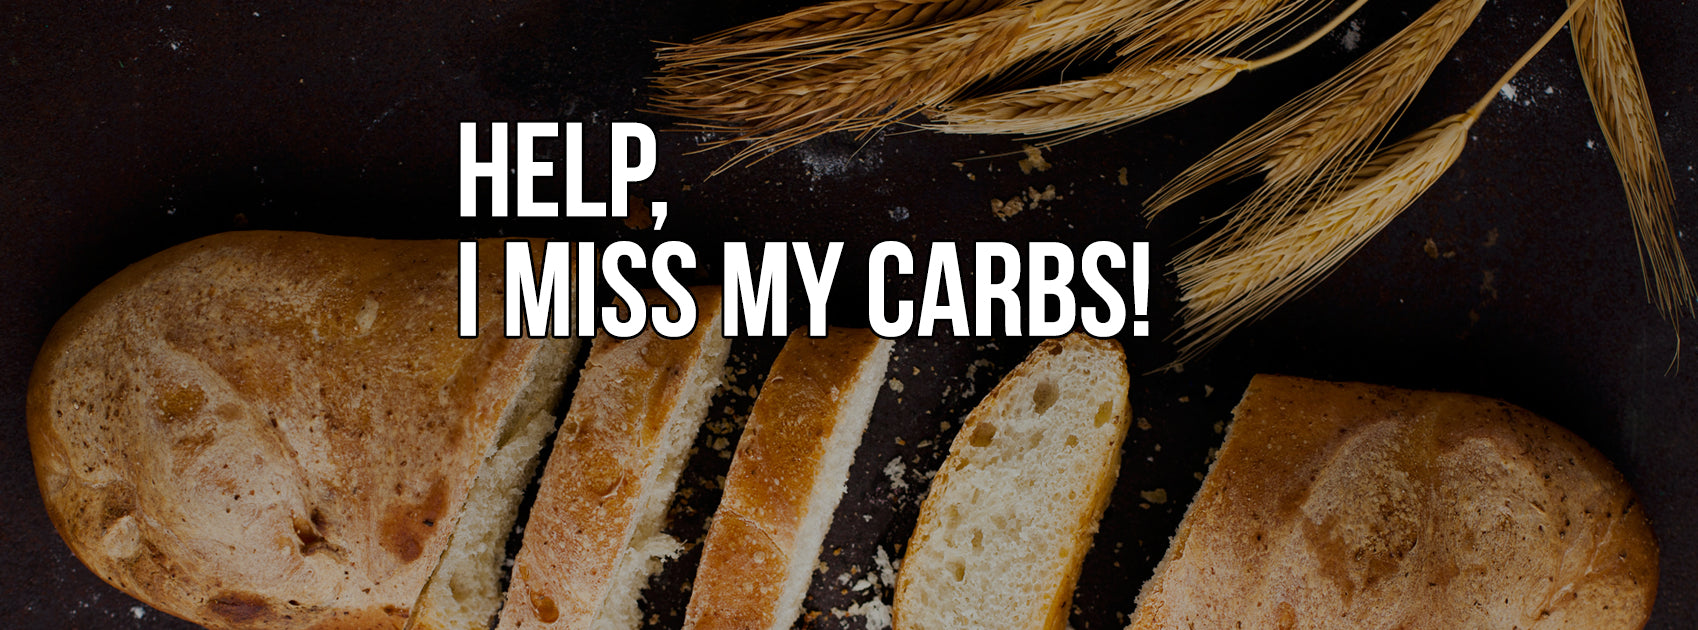 HELP, I MISS MY CARBS!